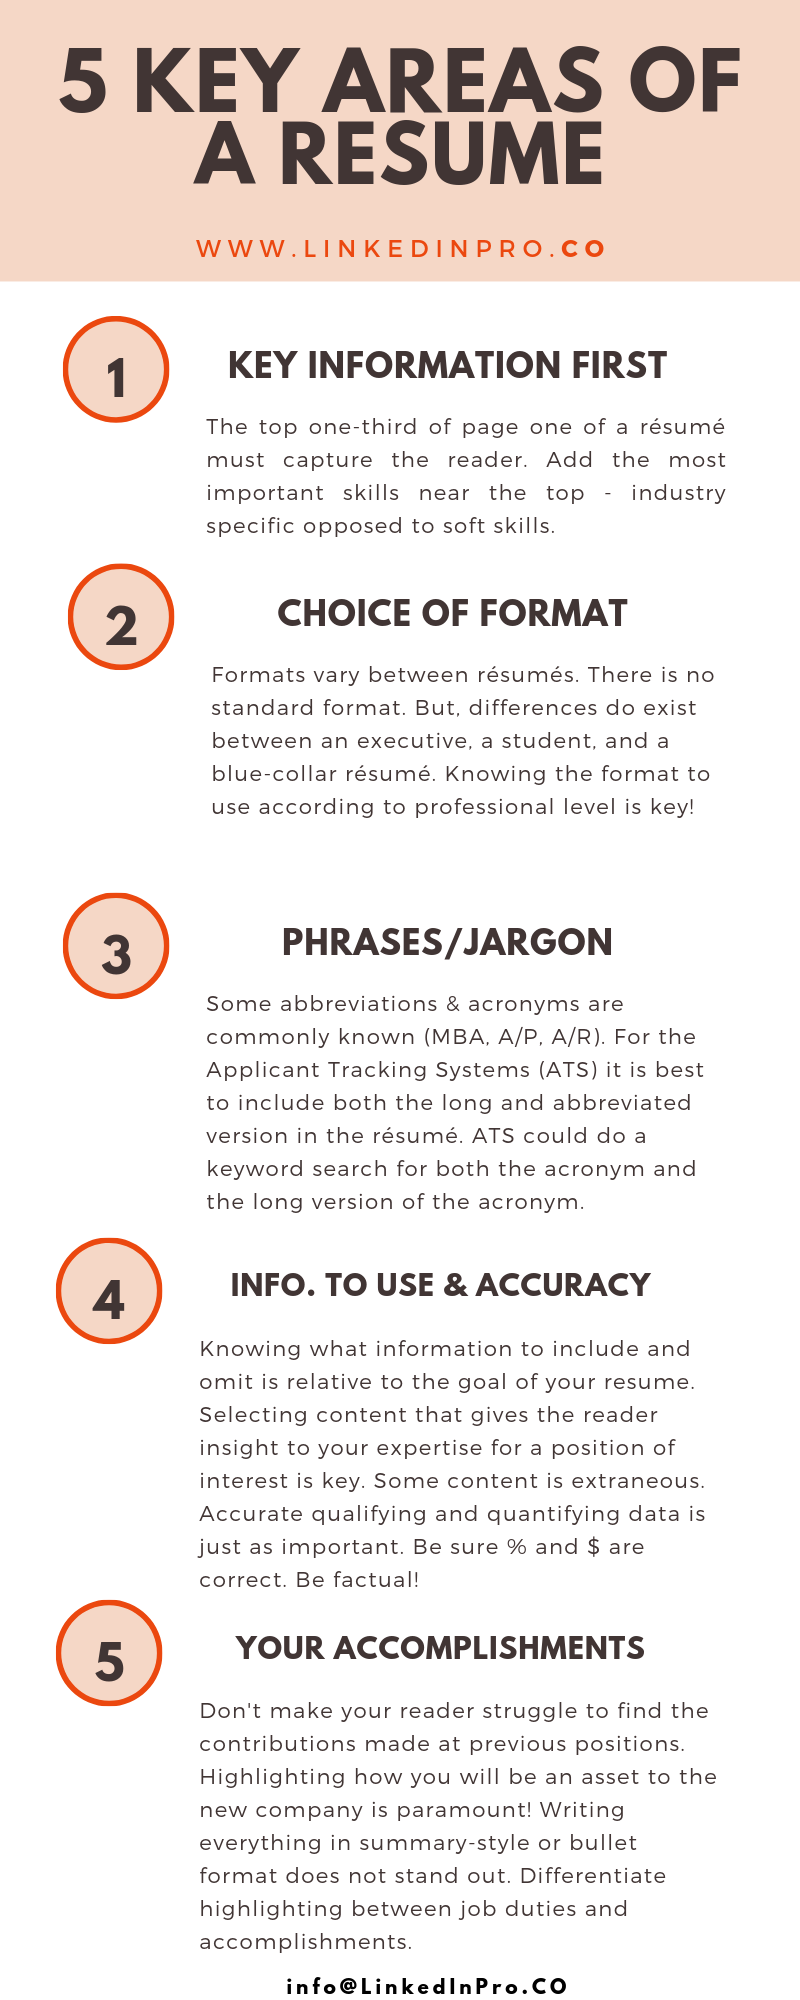 5 Key Areas of a Resume